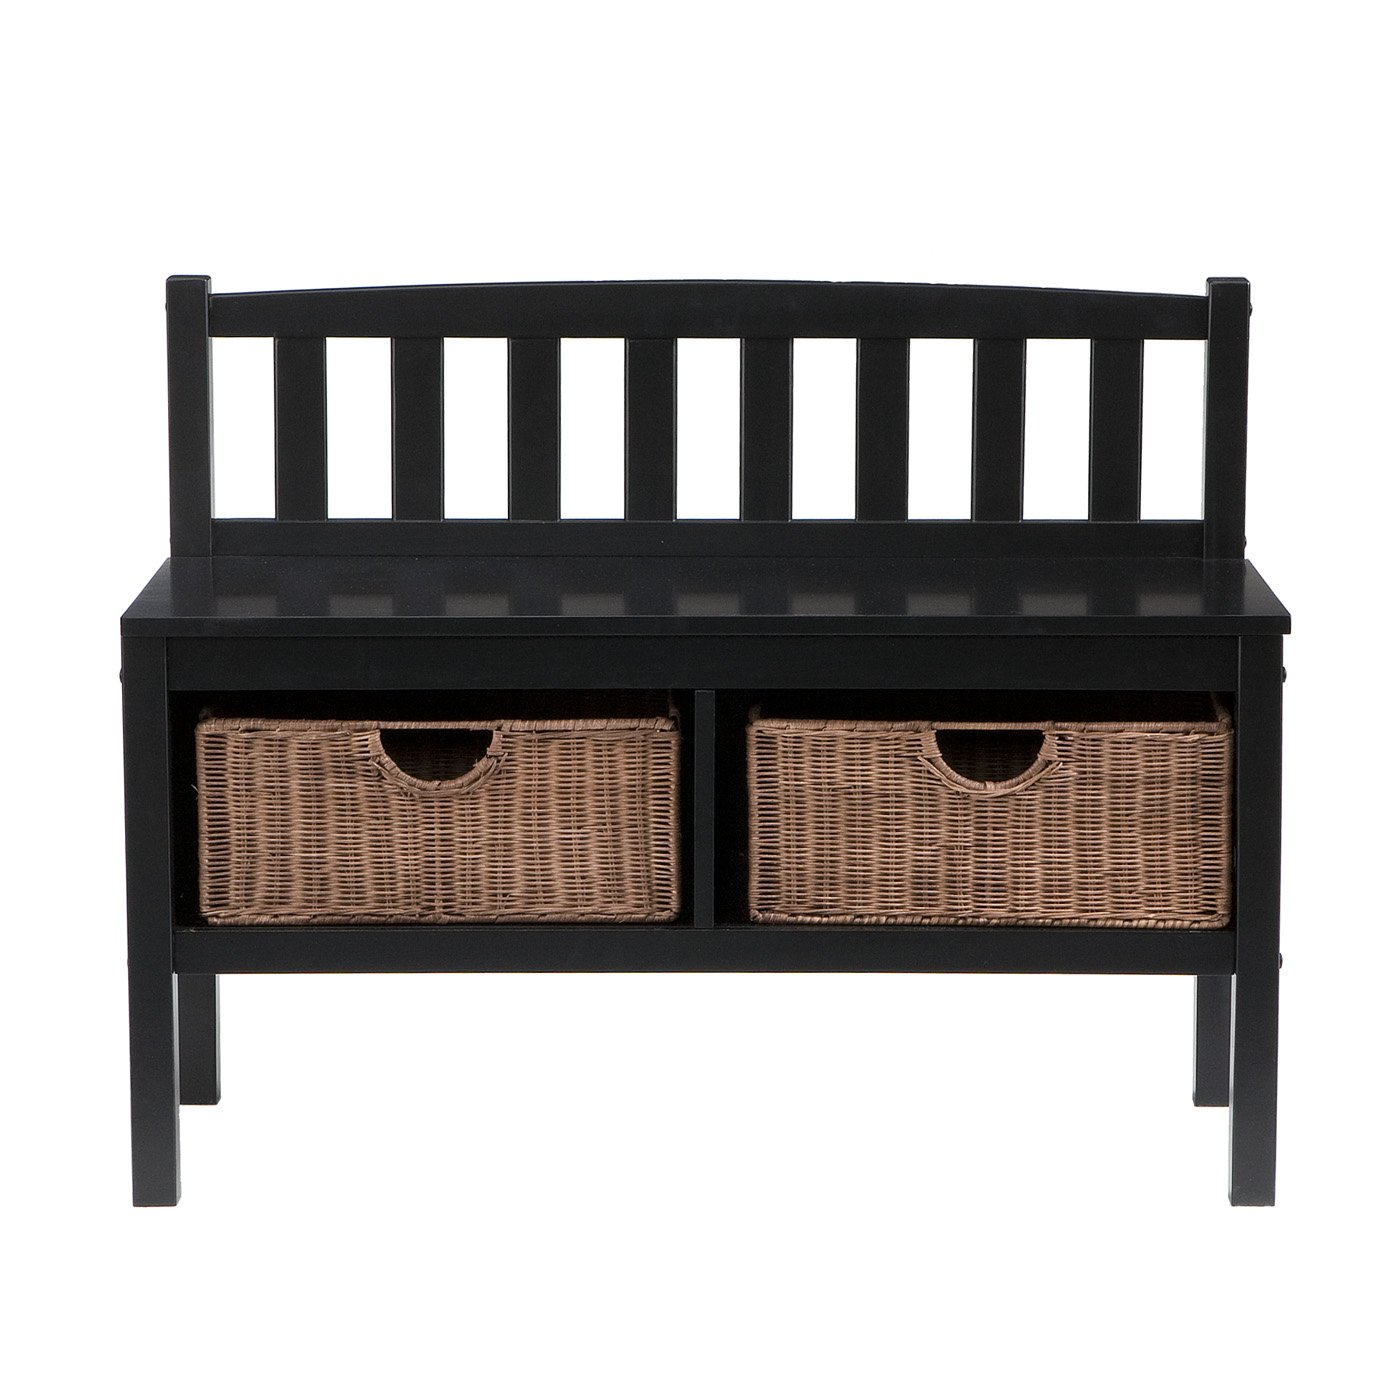 Southern Enterprises Storage Bench with Rattan Baskets, Black Finish by Southern Enterprises, Inc.